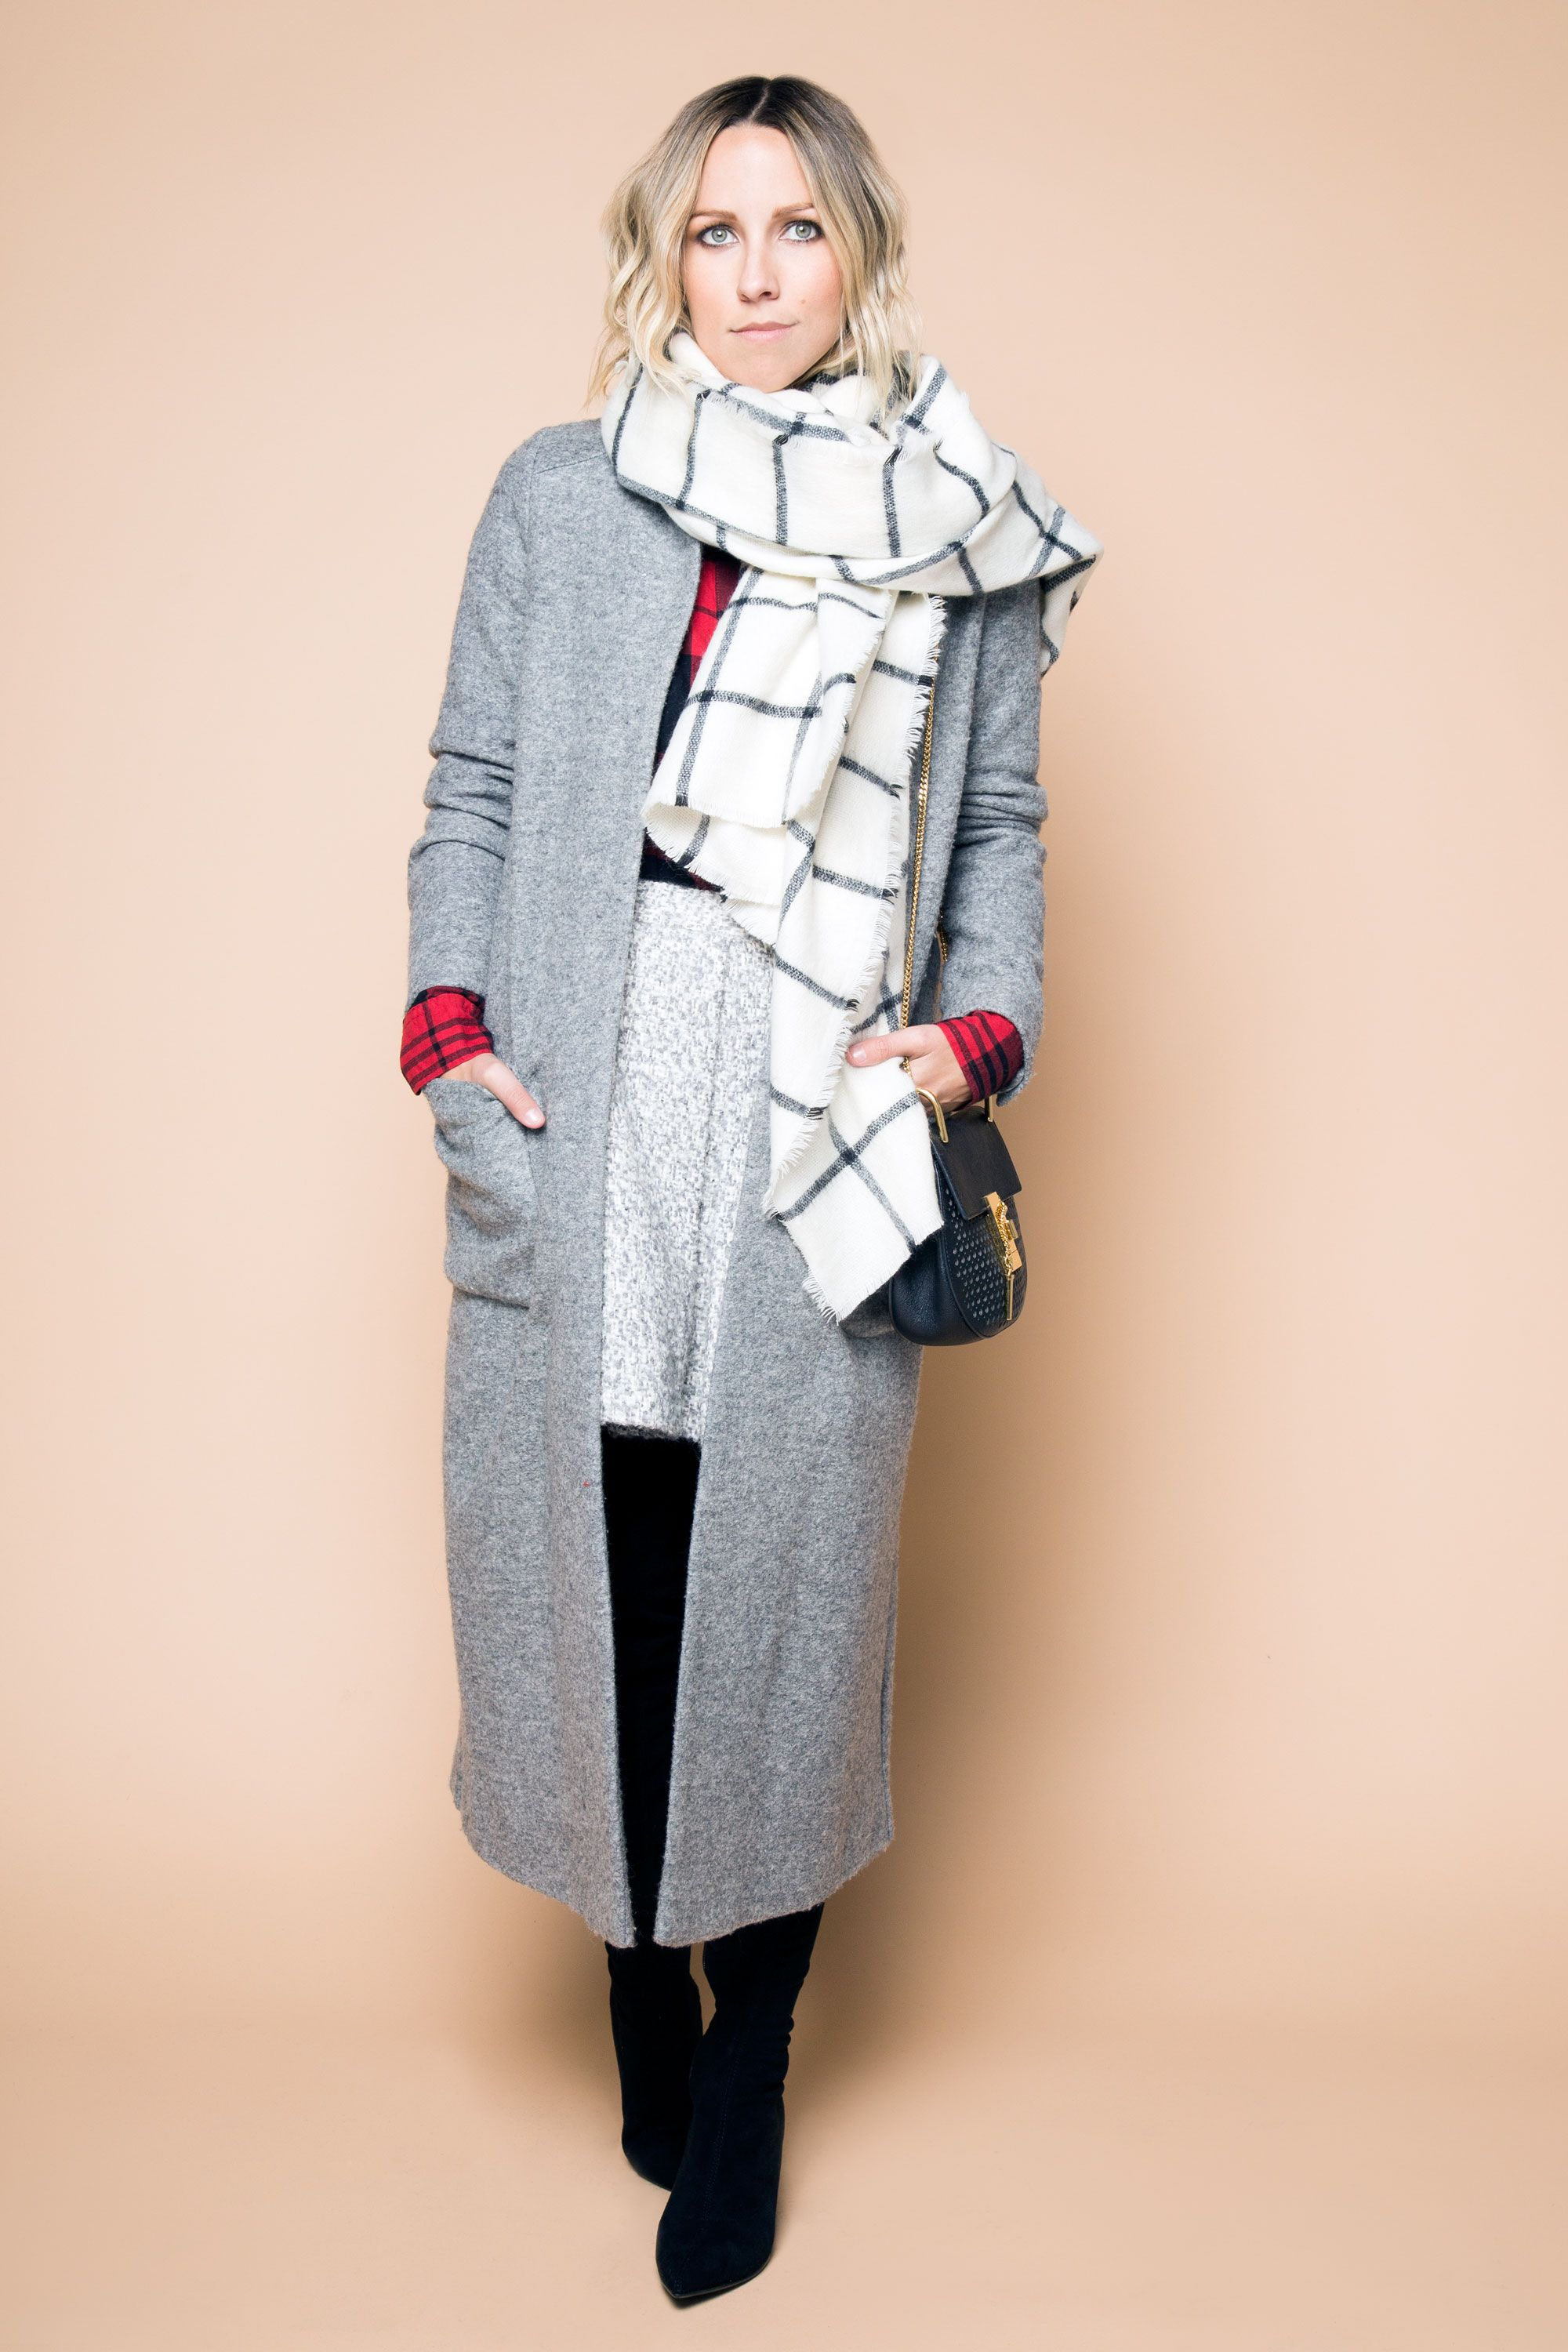 "<p>Observe: opposite sizes, opposite patterns, opposite everything. ""A larger, simpler windowpane print in a neutral shade works well against a smaller, busier print in a more dominant color,"" Duprie says. ""Keep everything else monochromatic and muted—the plaids are the stars here.""</p>"